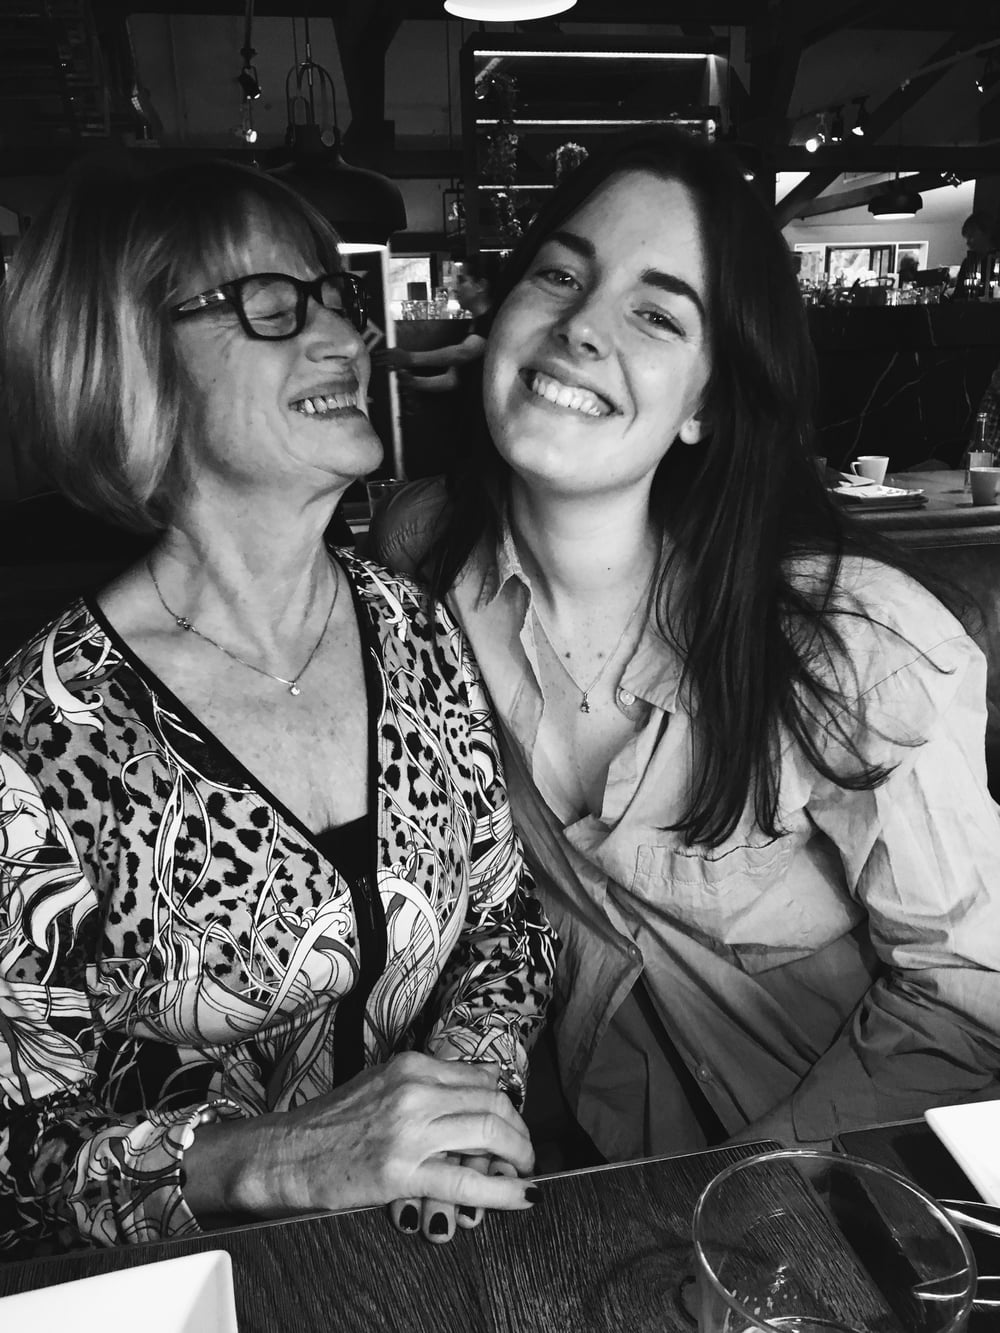 Me and my grandma at Fotografiska in October.